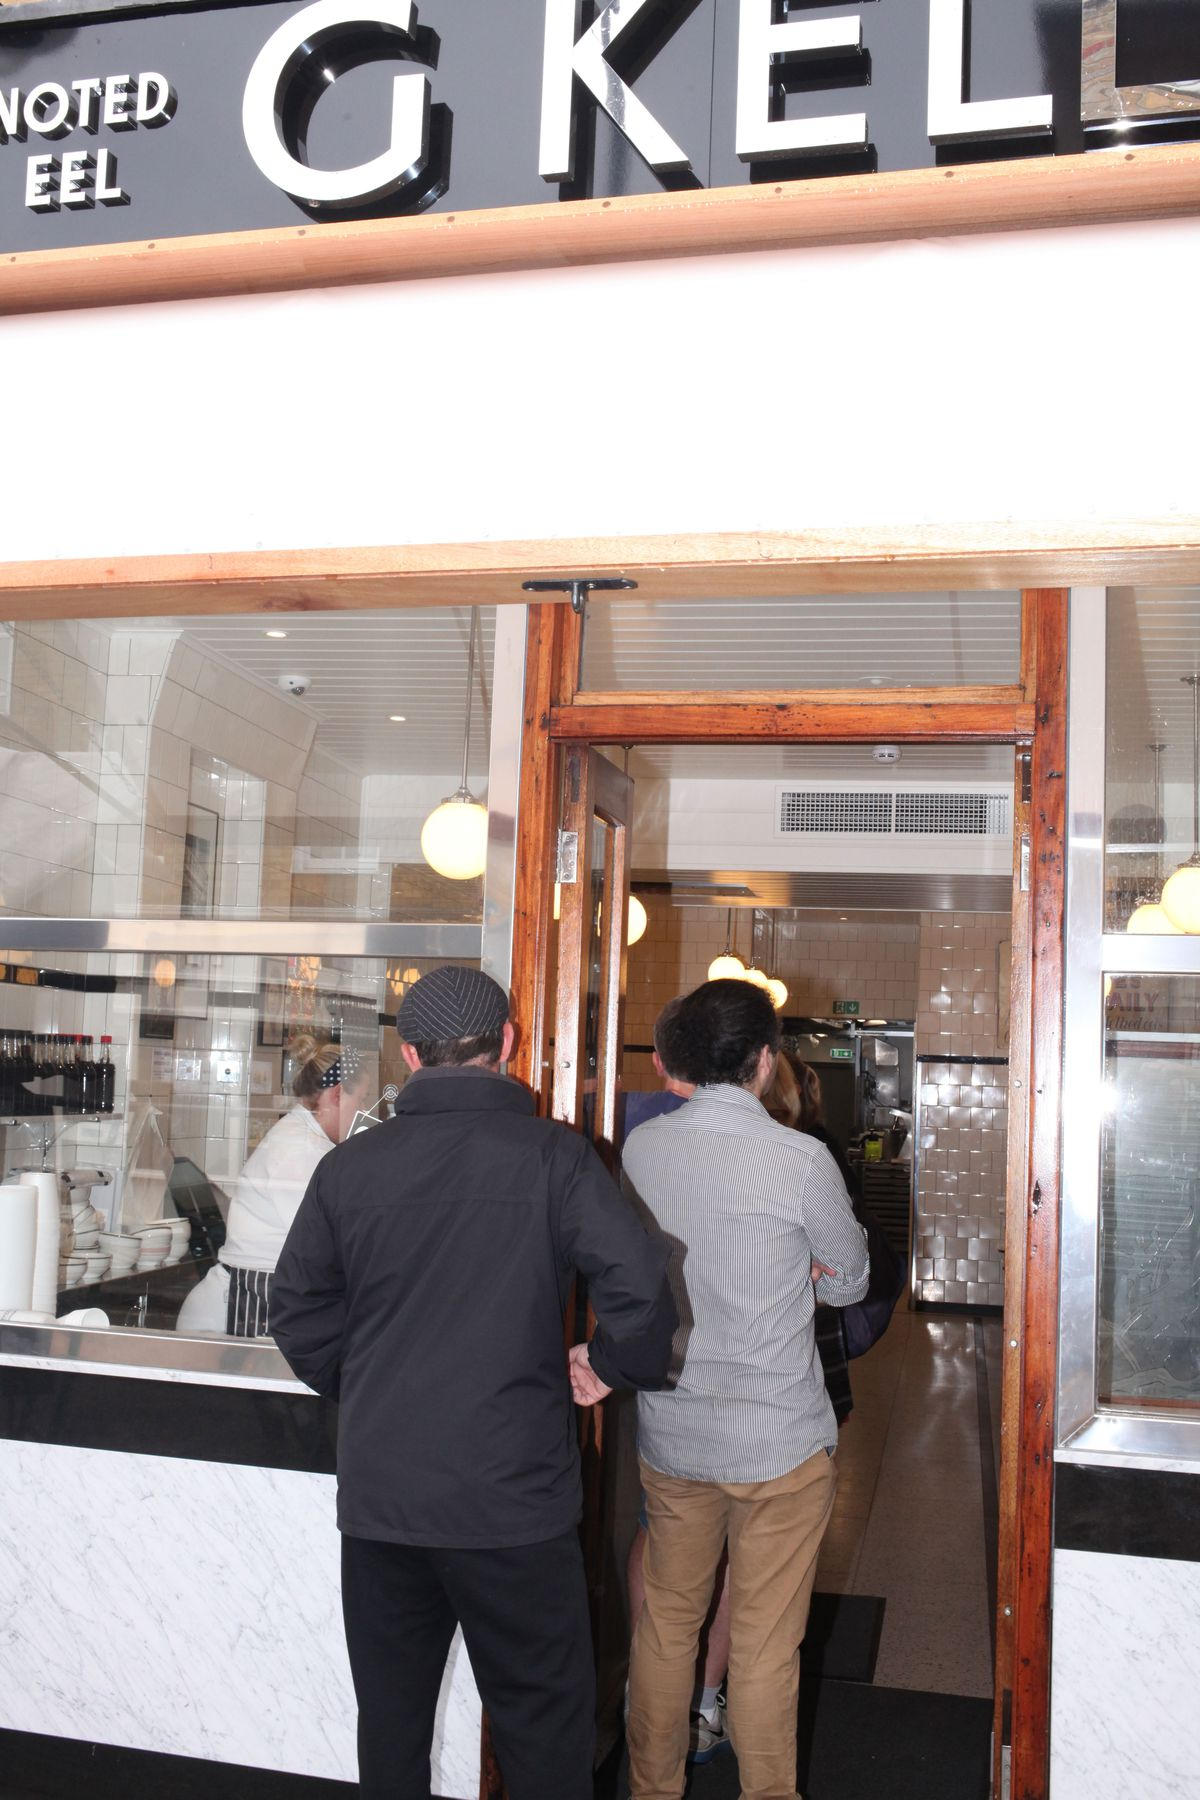 A queue out of the door at G. Kelly on Roman Road, east London